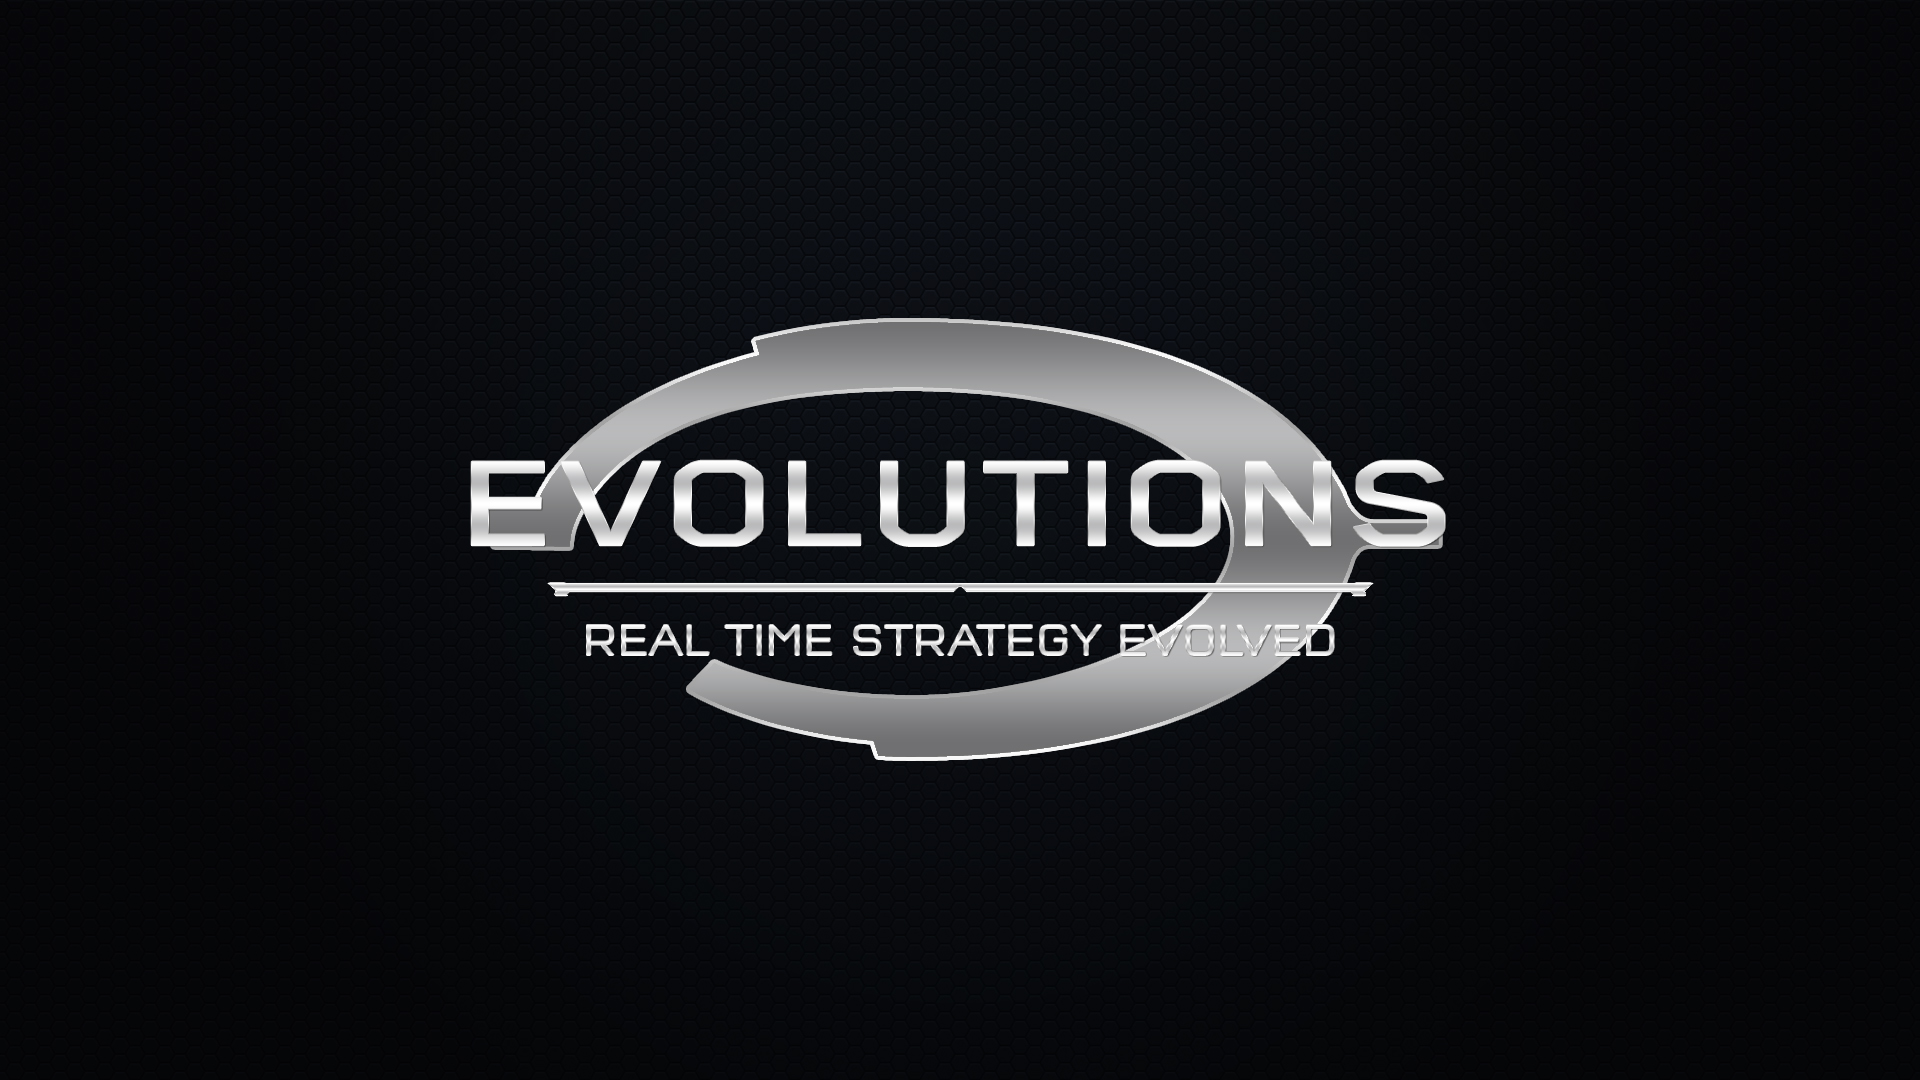 Evolutions: Real Time Strategy Evolved mod for C&C3: Tiberium Wars